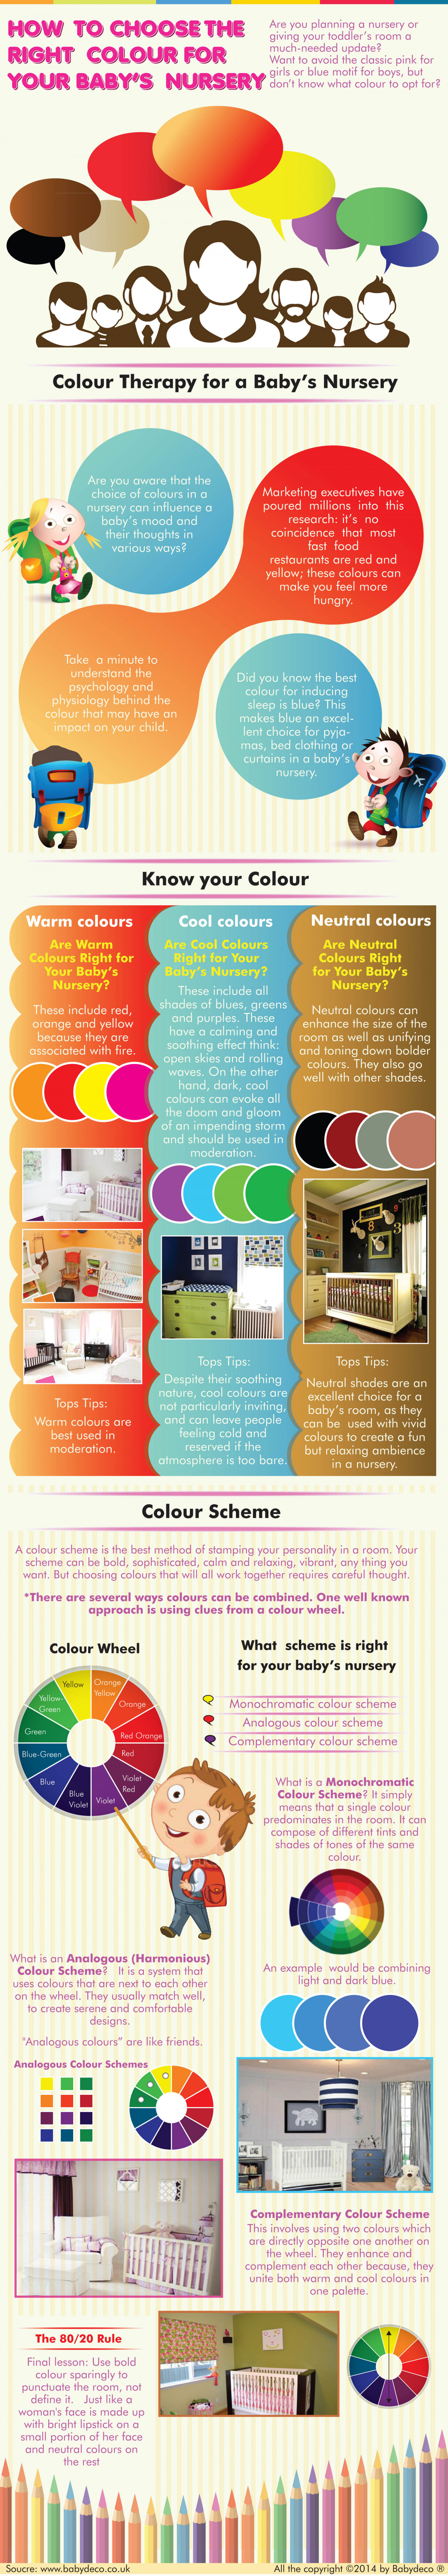 How to Choose the Right Colour for Your Baby's Nursery Infographic